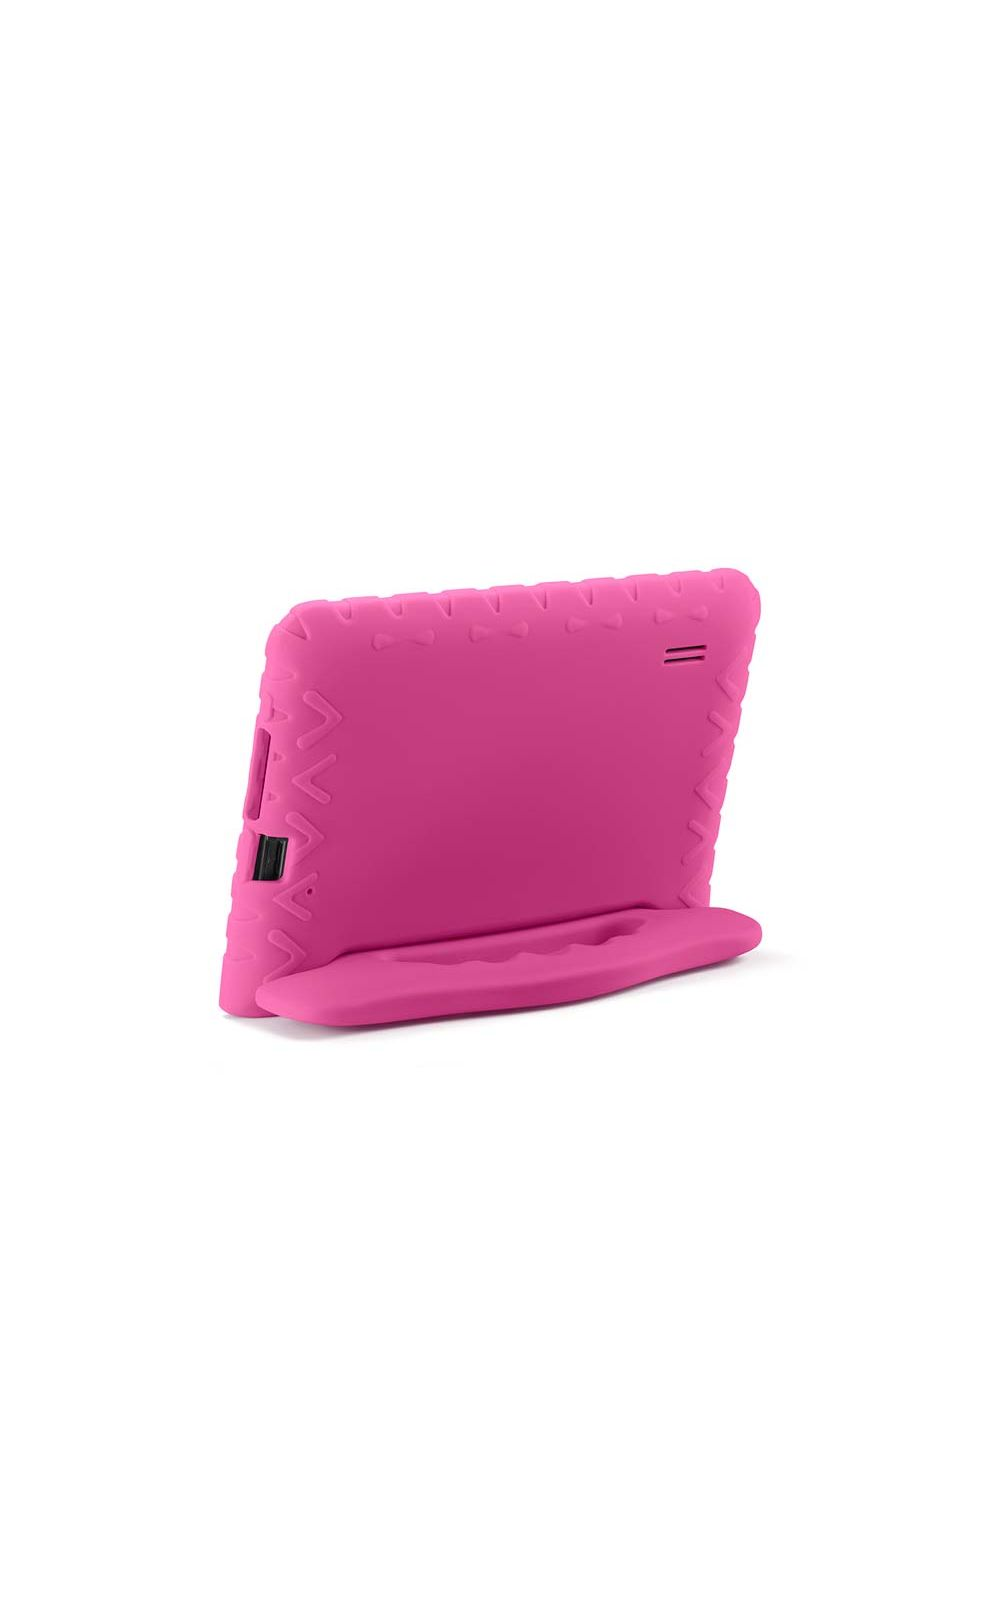 Foto 3 - Tablet Kid Pad Lite Multilaser 7 Pol. 16GB Quad Core Android 8.1 Rosa - NB303